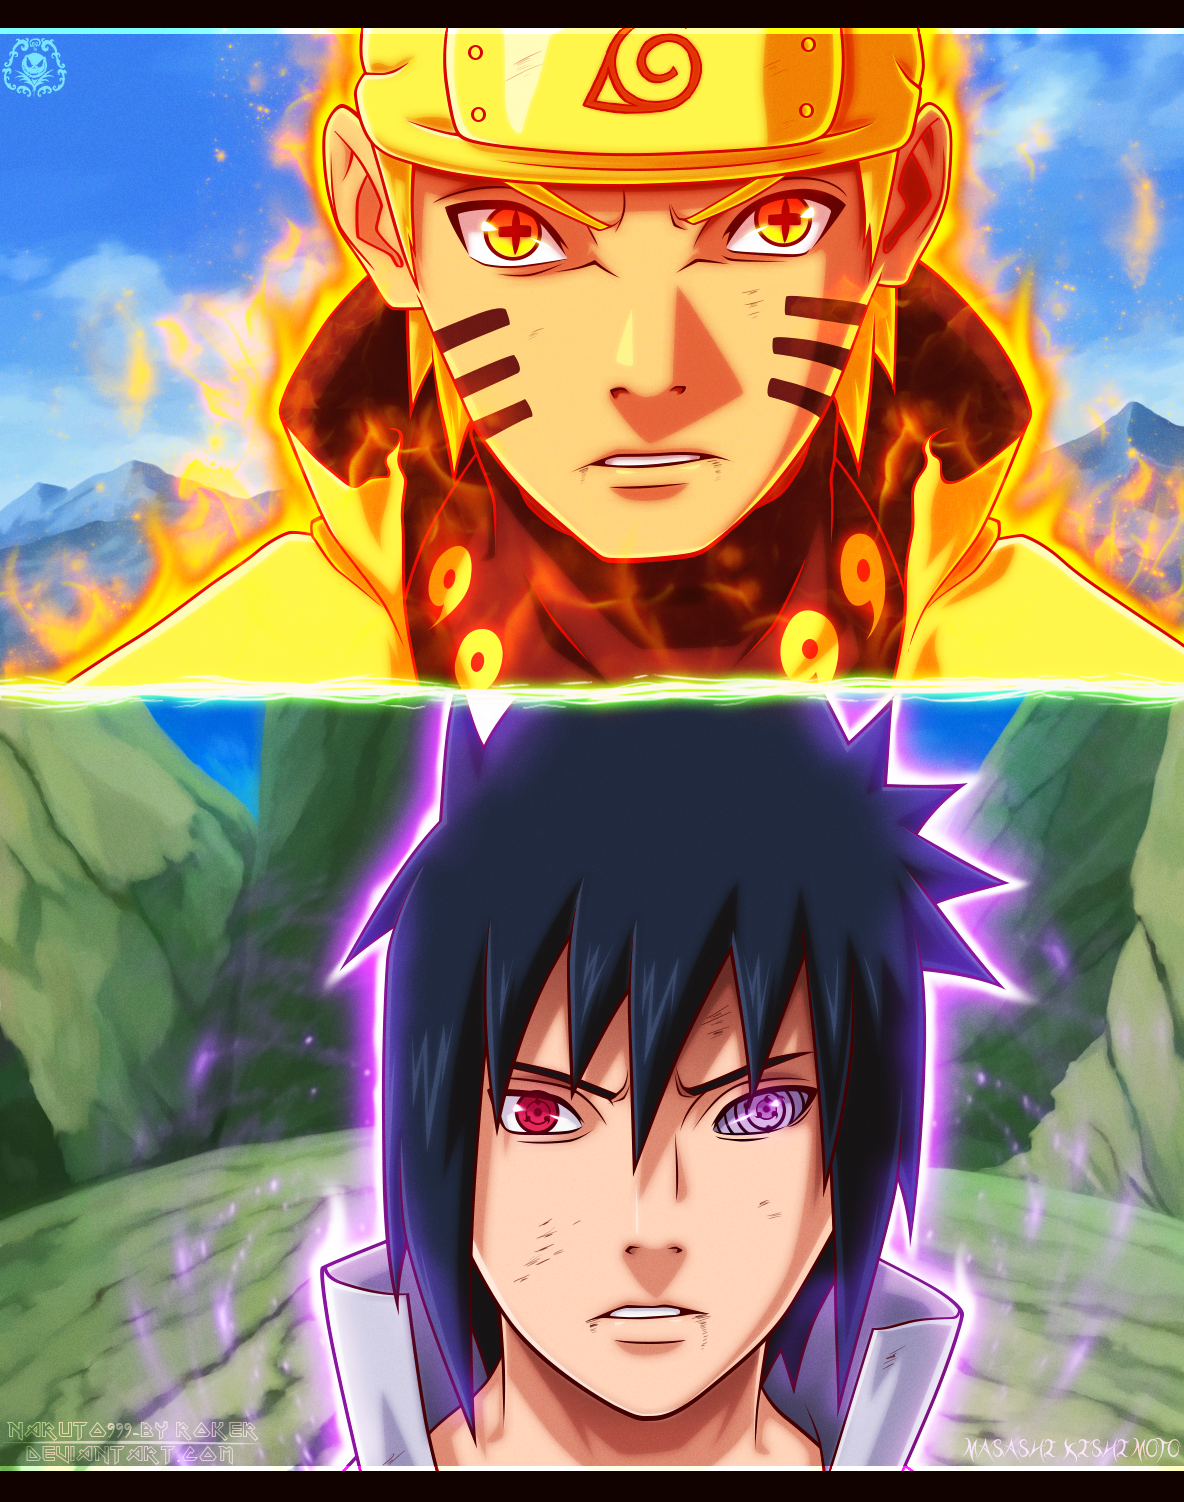 Naruto vs sasuke manga 696 by naruto999 by on deviantart anime - Naruto as sasuke ...